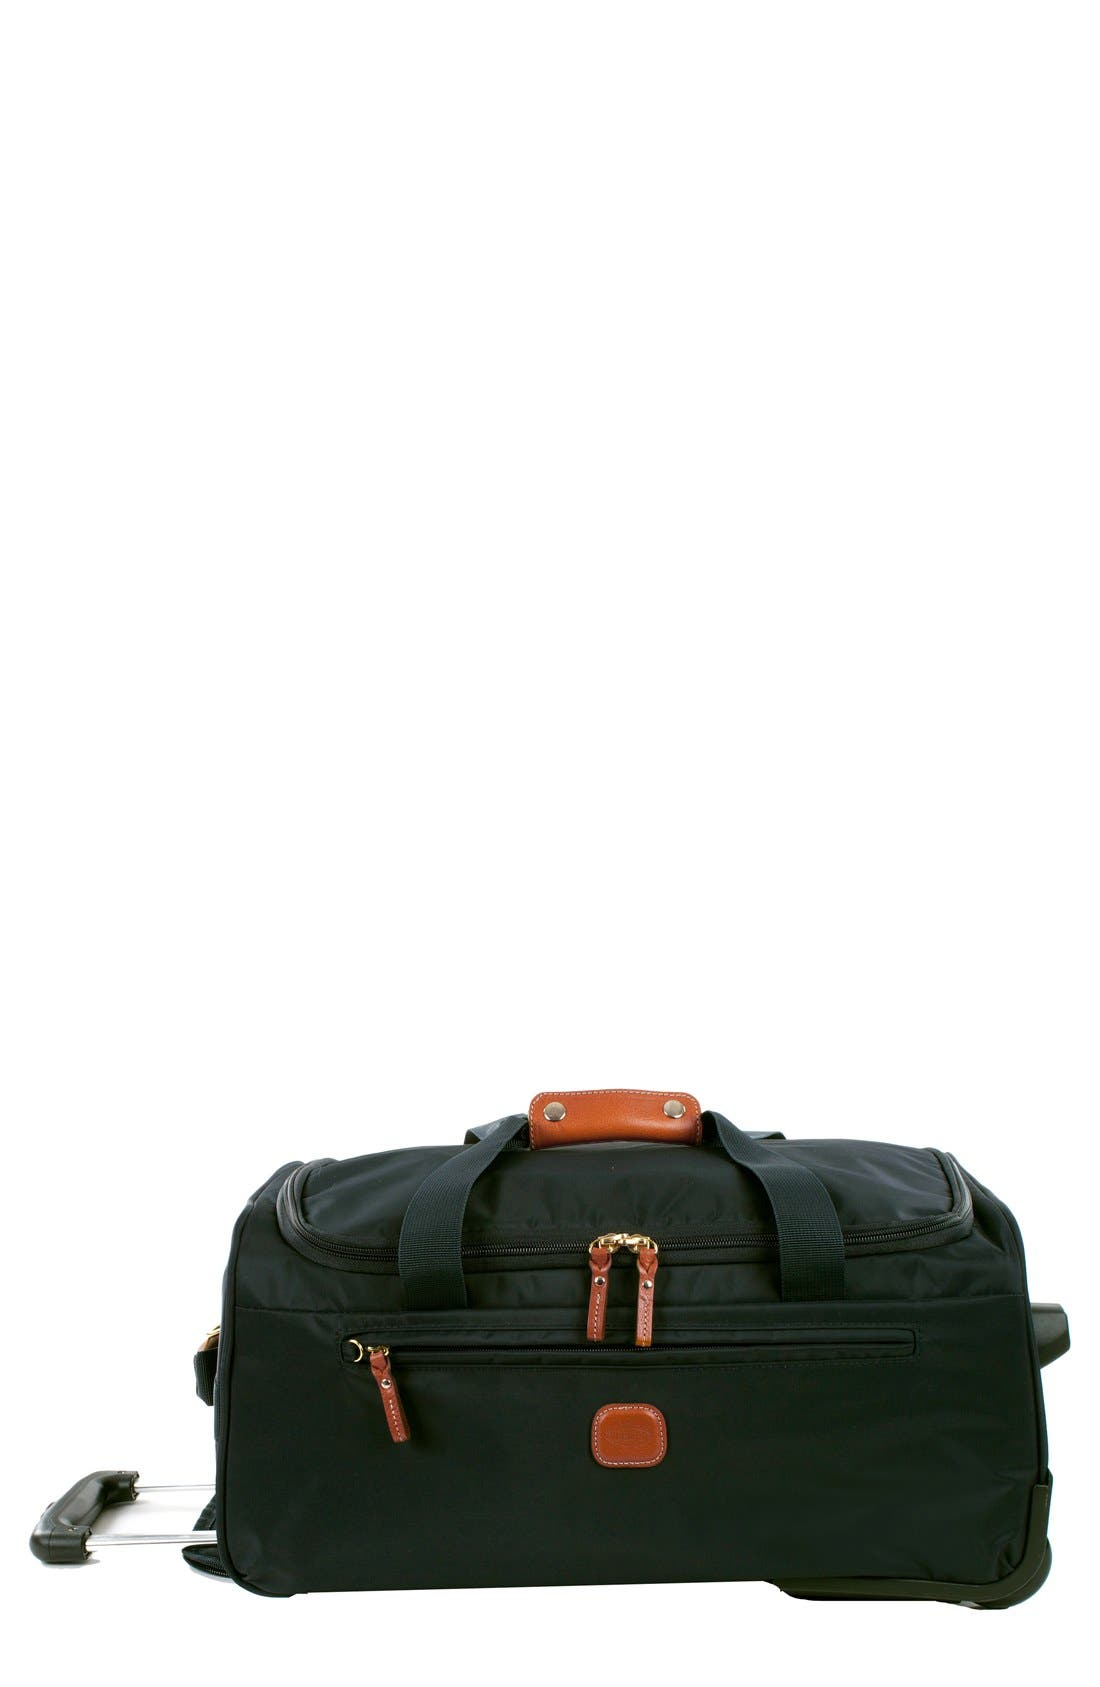 Main Image - Bric's X-Bag 21-Inch Rolling Carry-On Duffel Bag